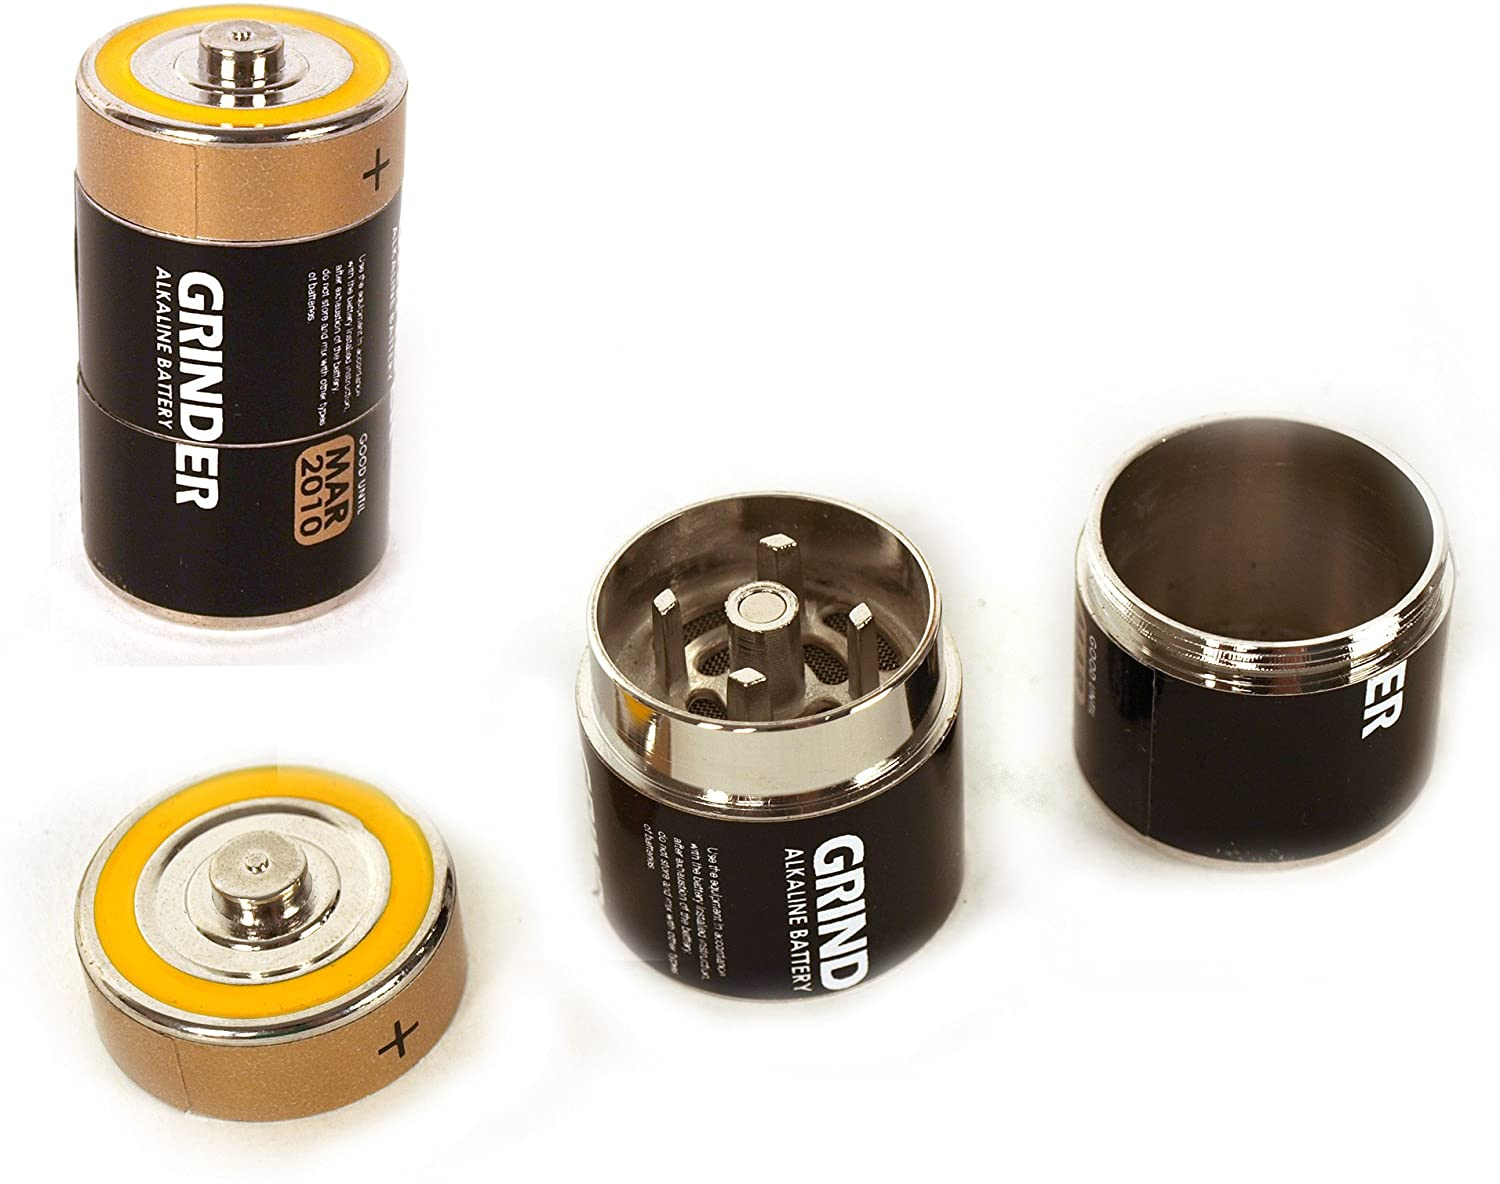 Fusion Battery Disguise Grinder - 3 Part Magnetic Herb Grinder